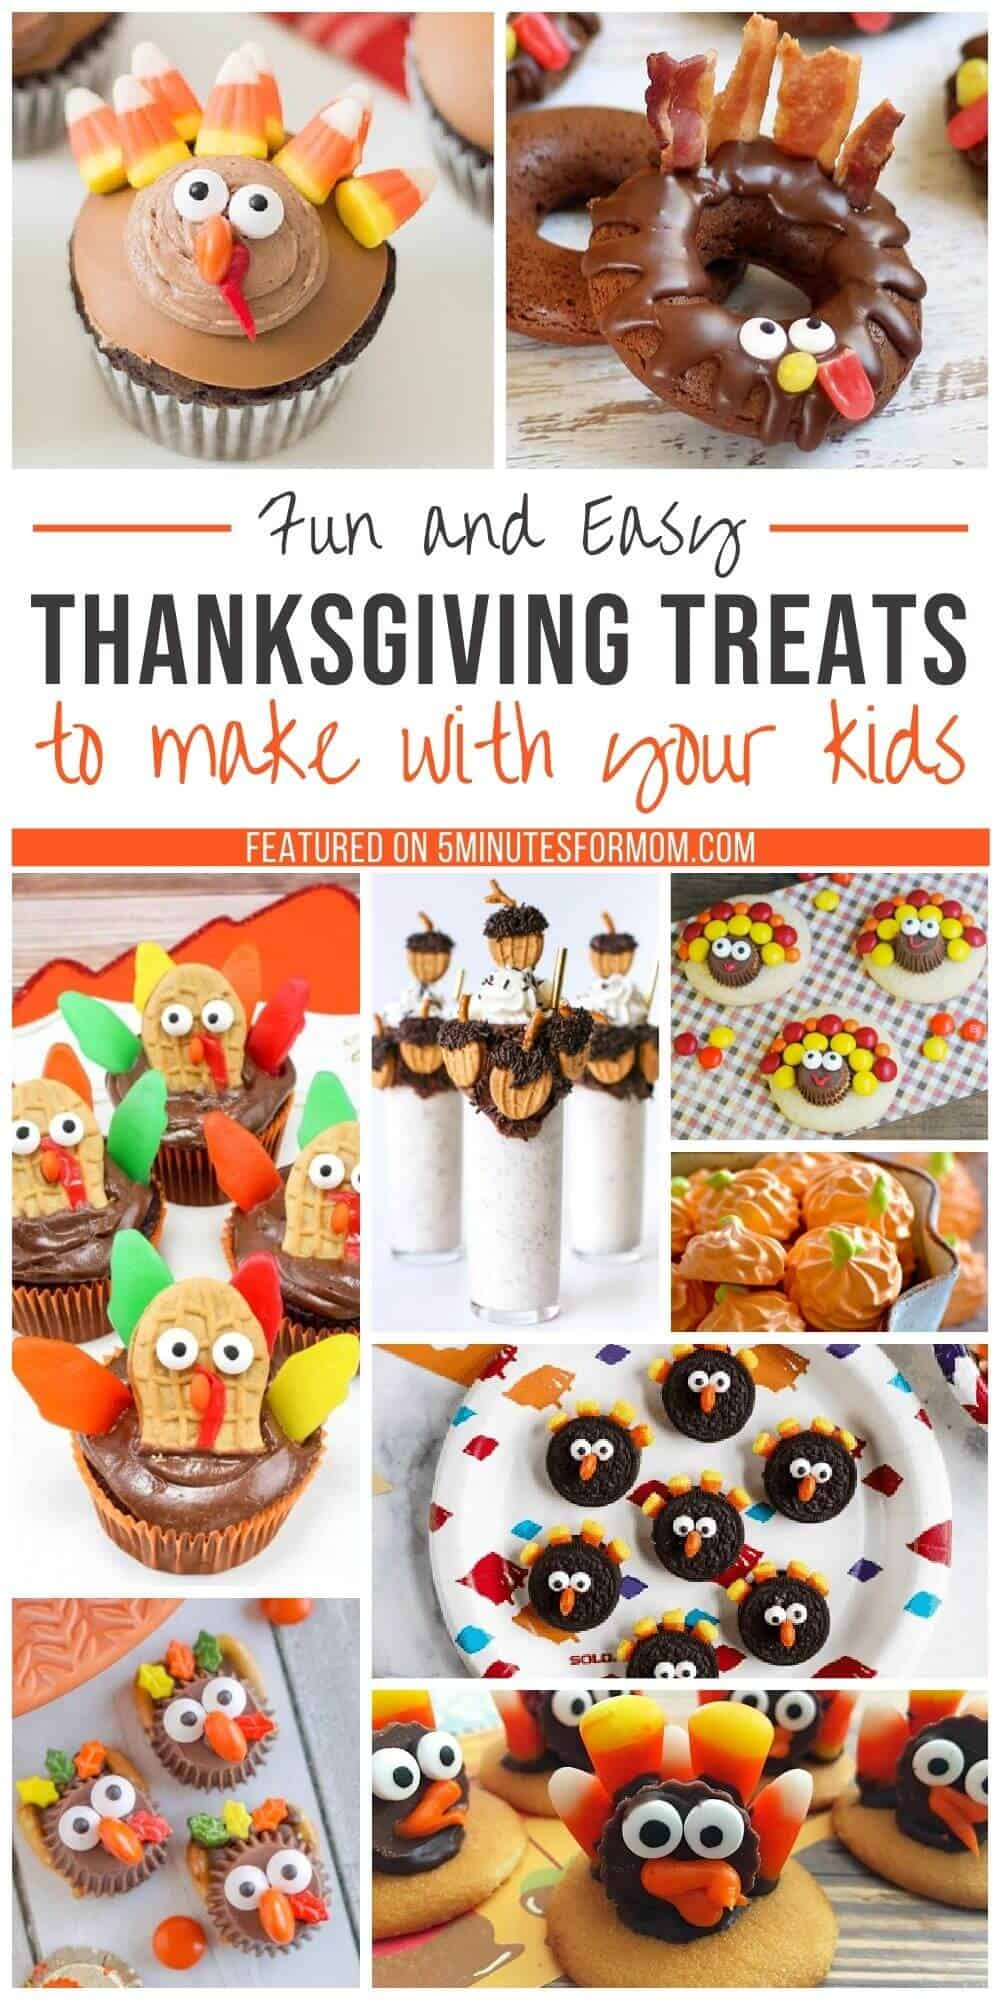 Fun and Easy Thanksgiving Treats